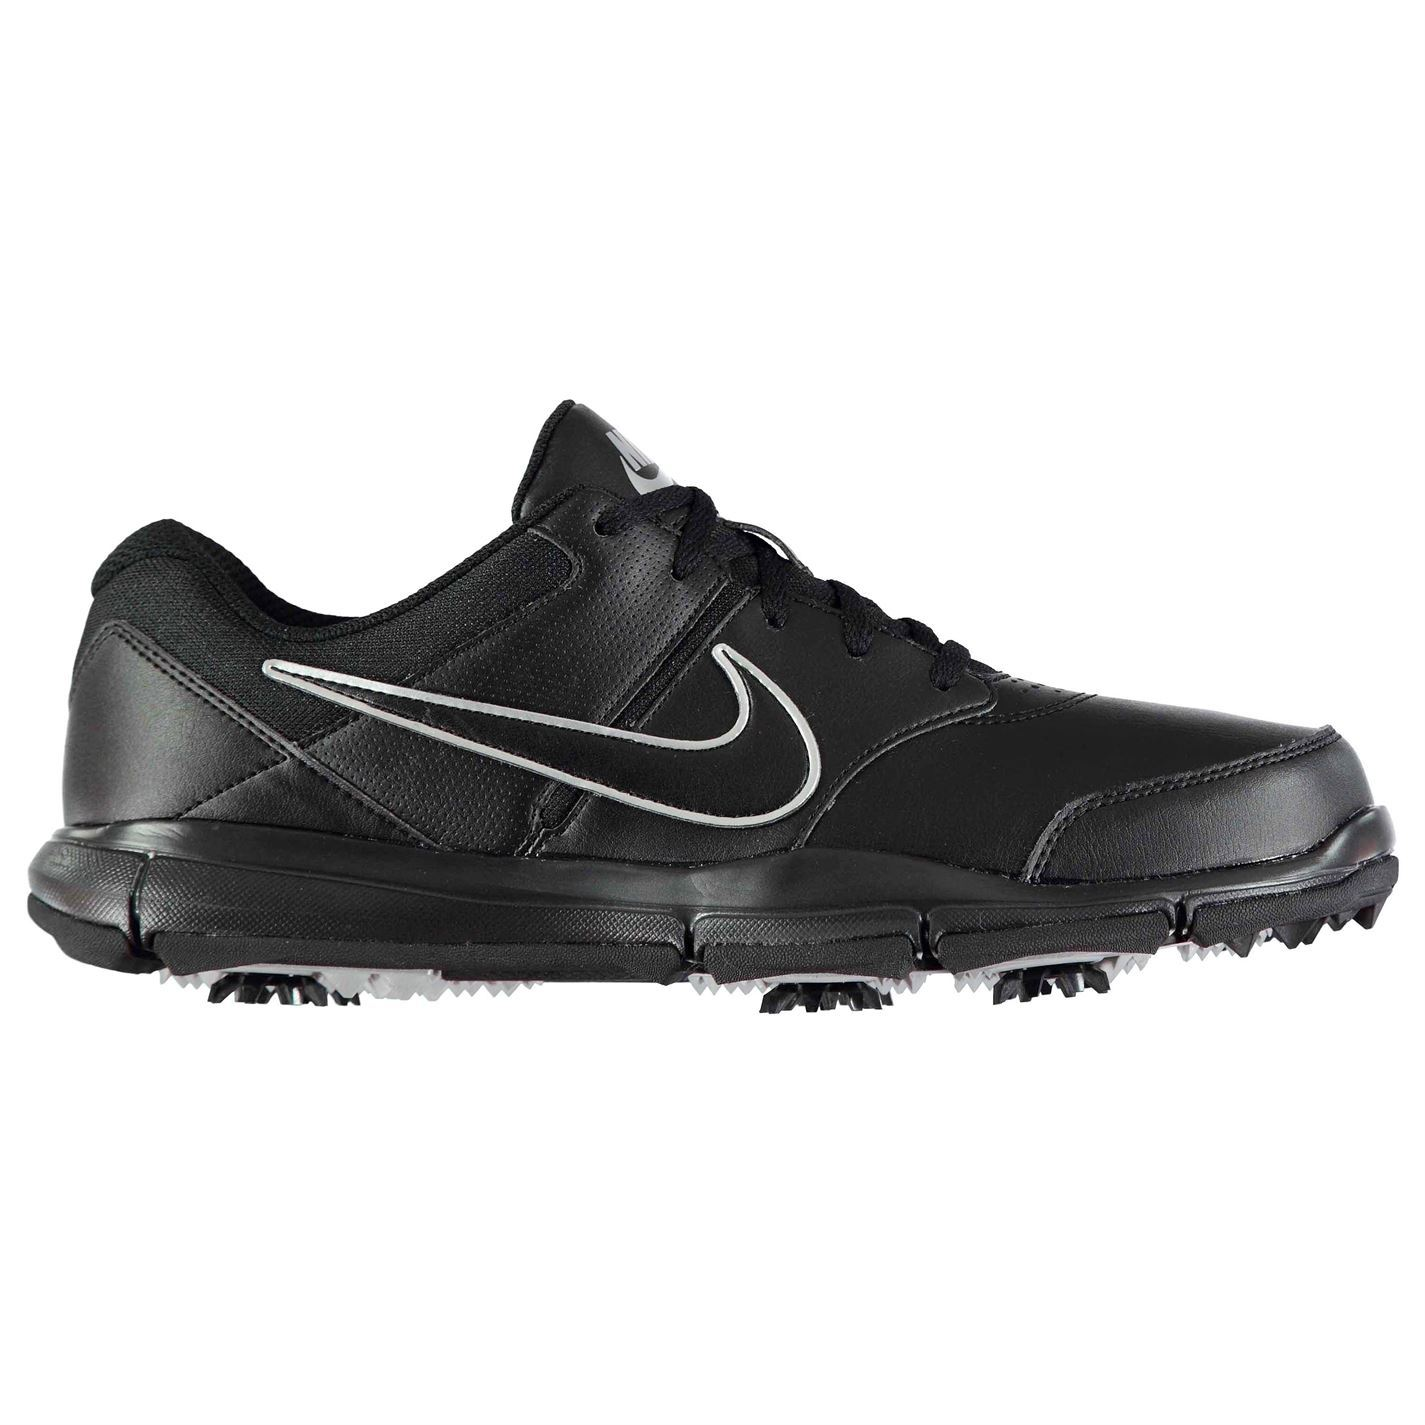 Nike-Durasport-4-Spiked-Golf-Shoes-Mens-Spikes-Footwear thumbnail 8